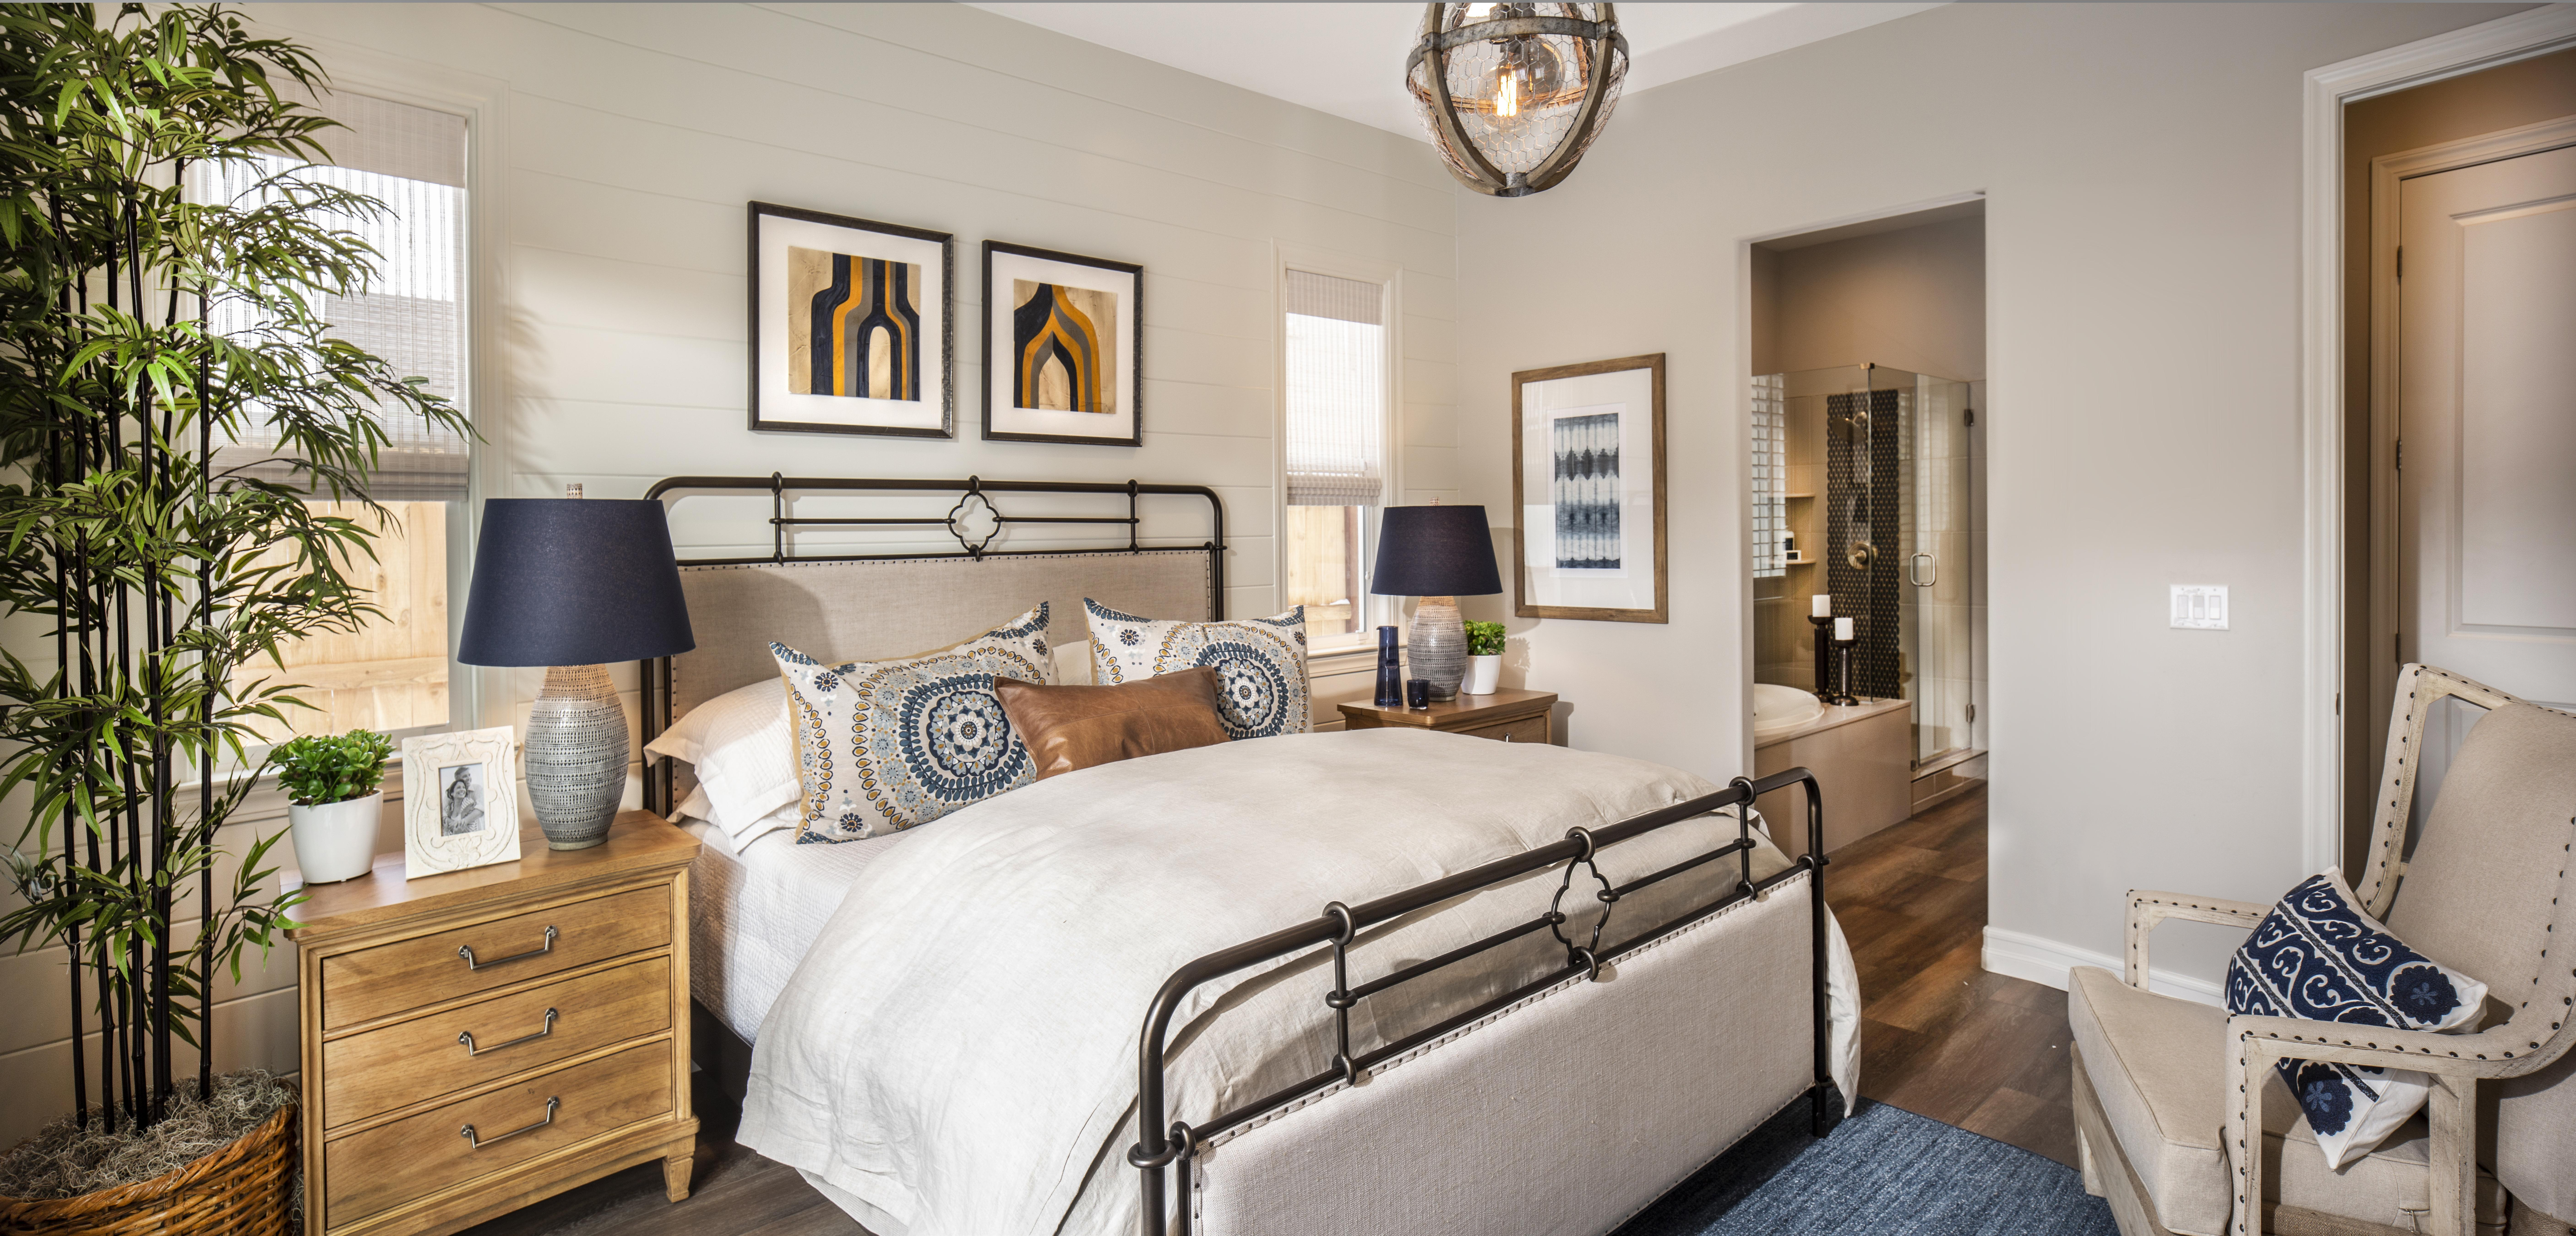 Bedroom featured in the Plan 1 By Bates Homes in Reno, NV